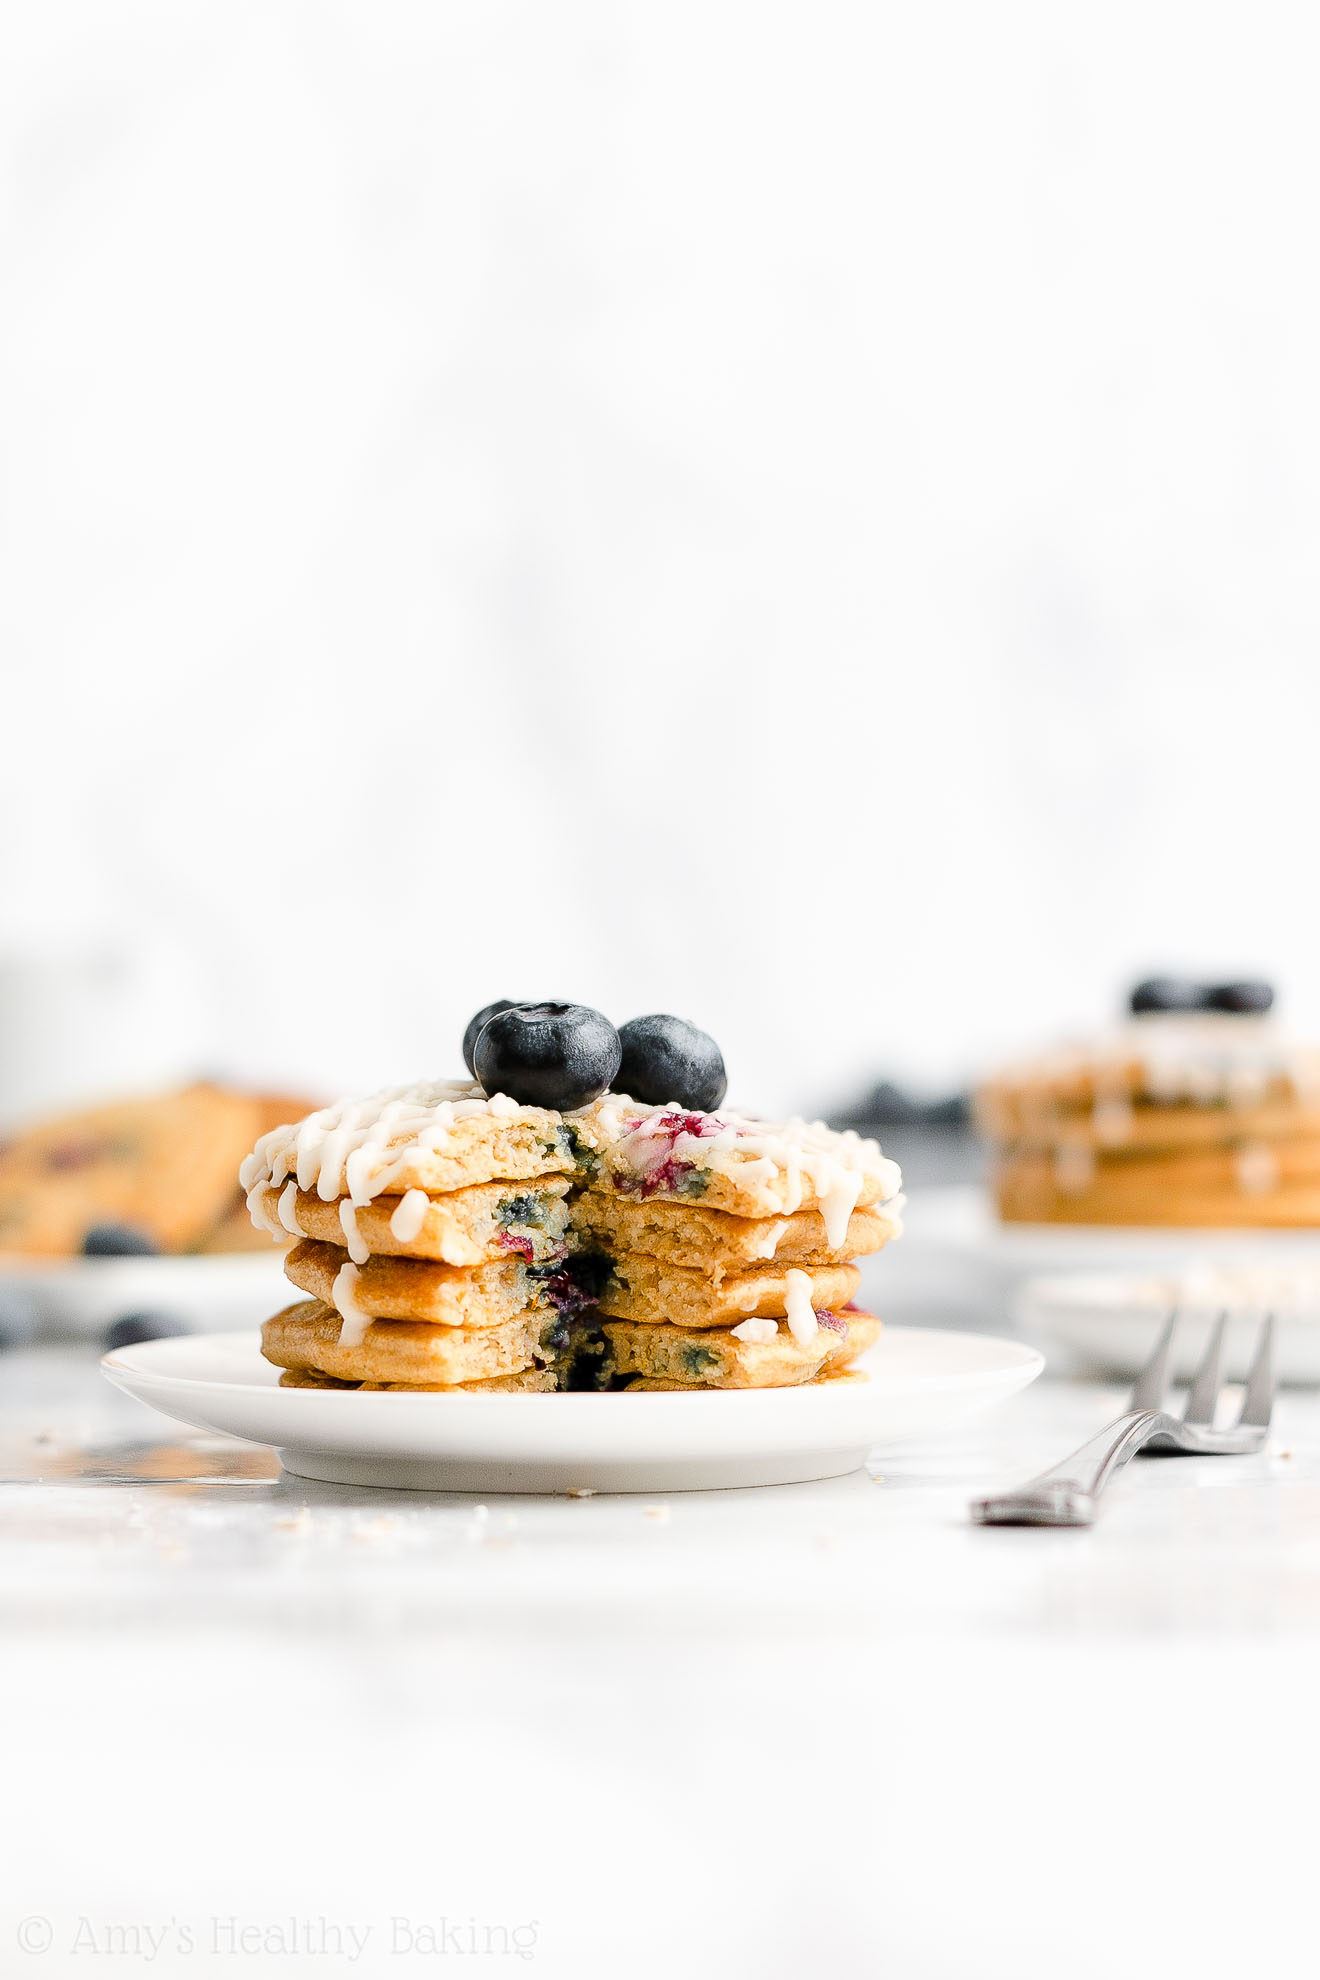 Easy Healthy Gluten Free Greek Yogurt Fluffy Blueberry Oatmeal Pancakes